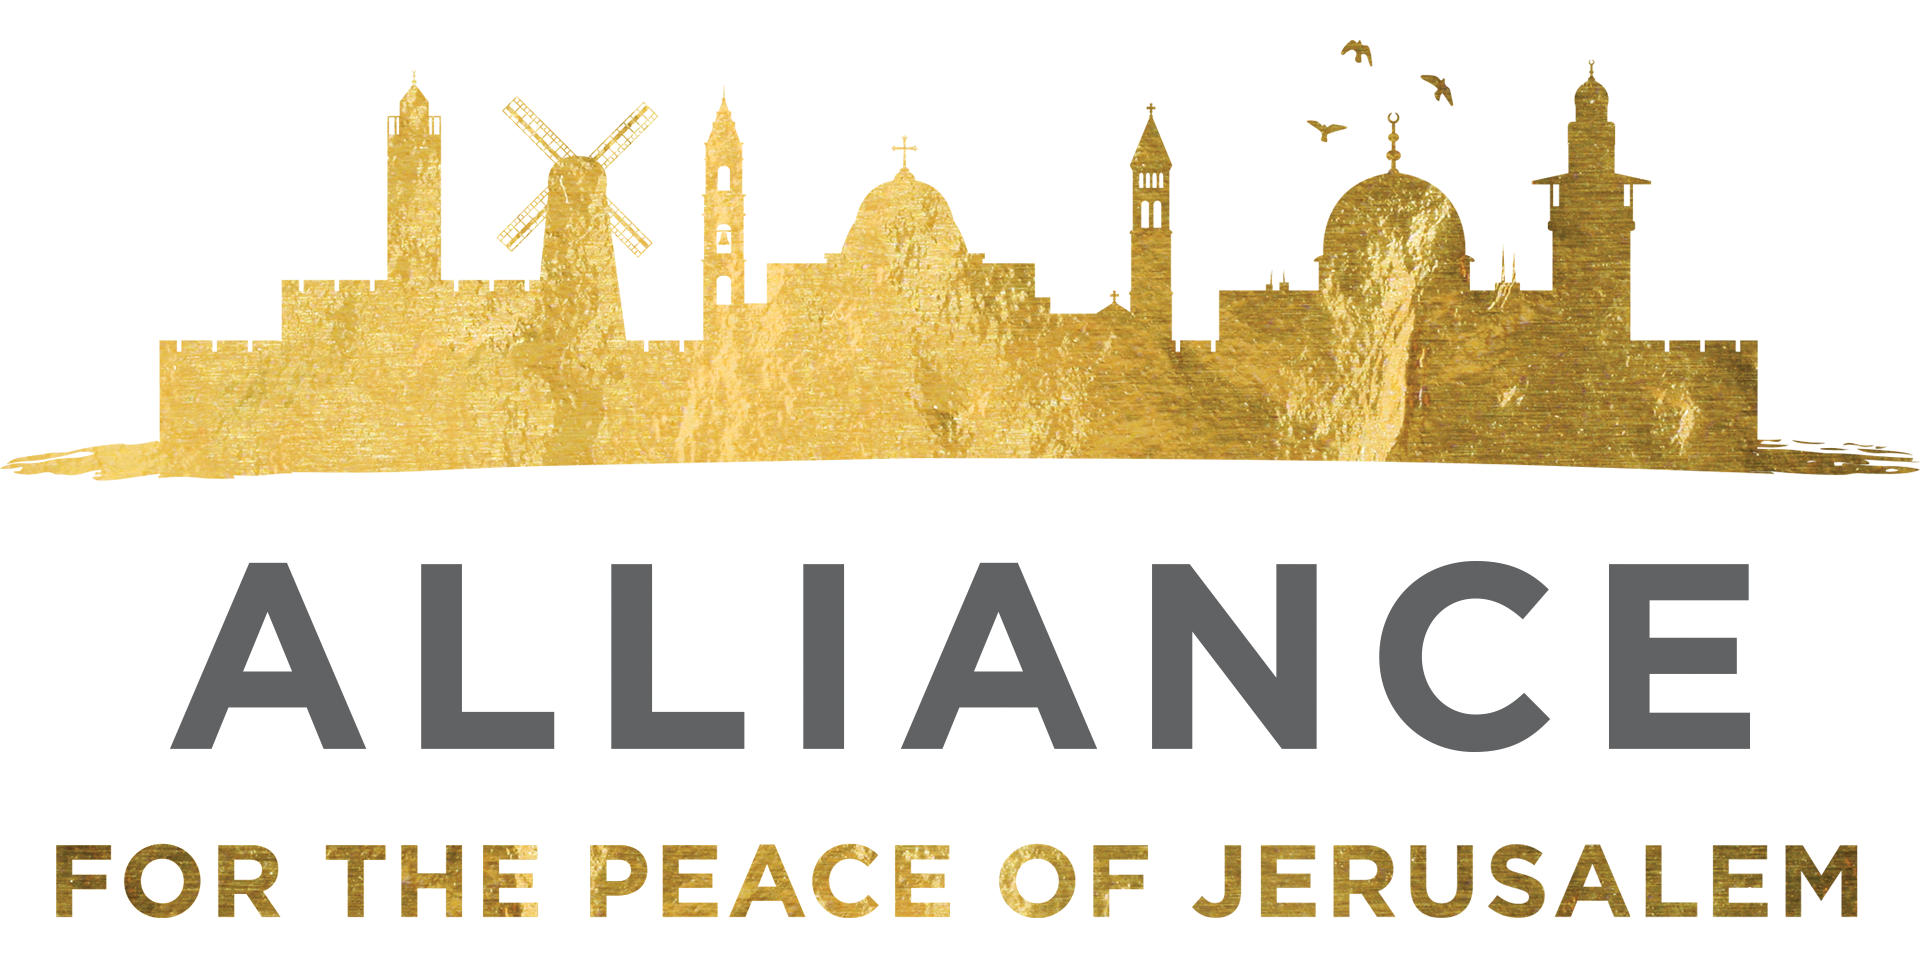 Jerusalem drawing architecture middle eastern. The statement alliance for